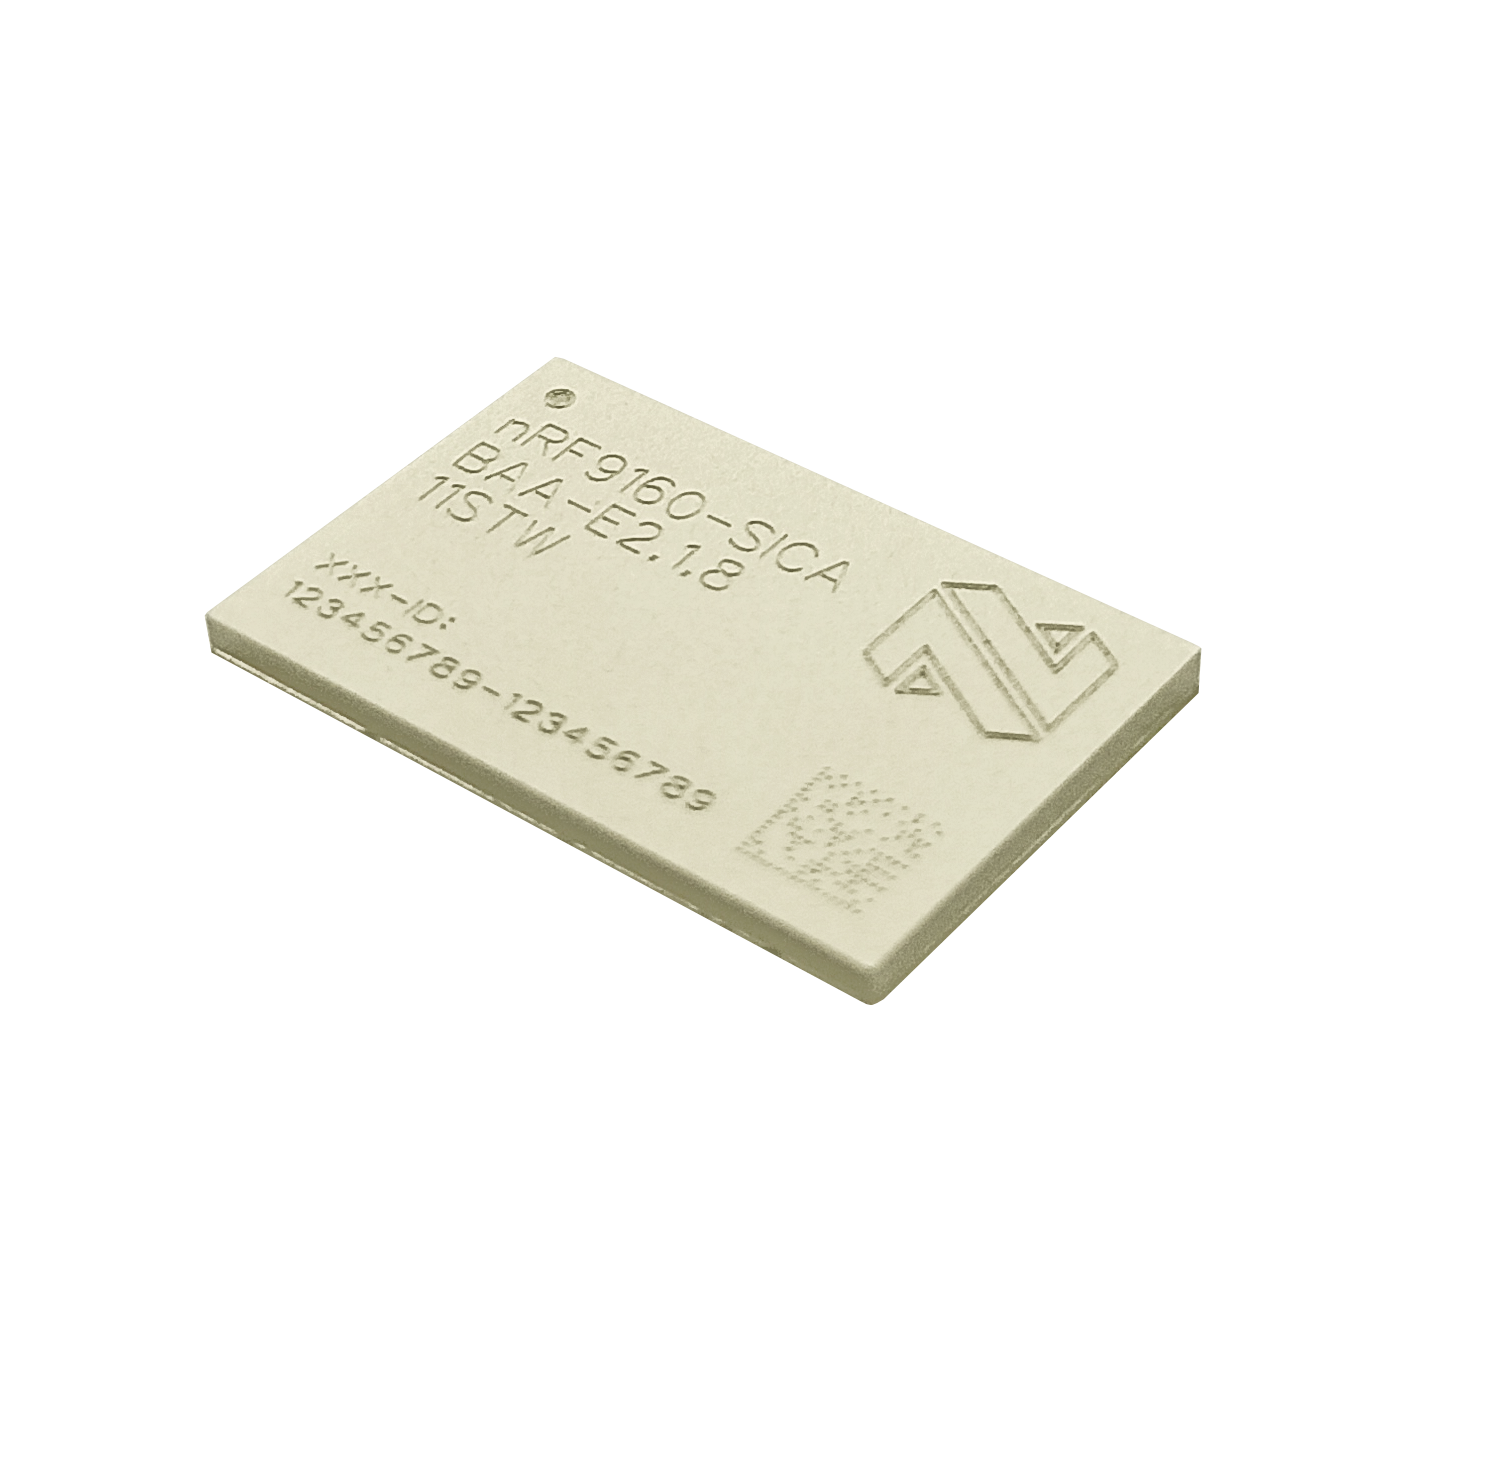 Low power cellular IoT module nRF9160 with integrated LTE-M/NB-IoT modem and GPS